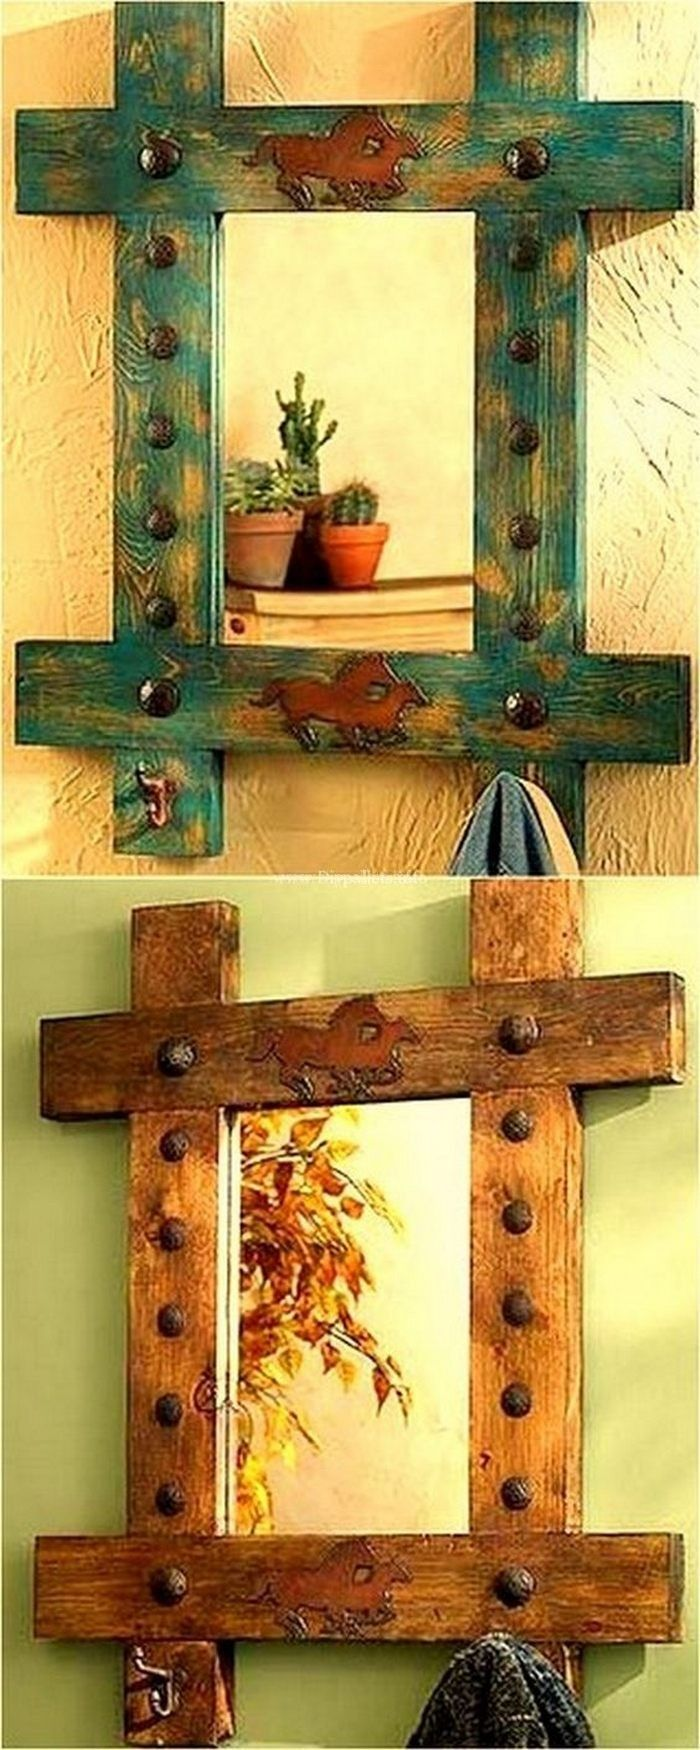 WOOD PALLET DECORATED WALL SHELVES IDEAS 2018 | Pallet shelving ...